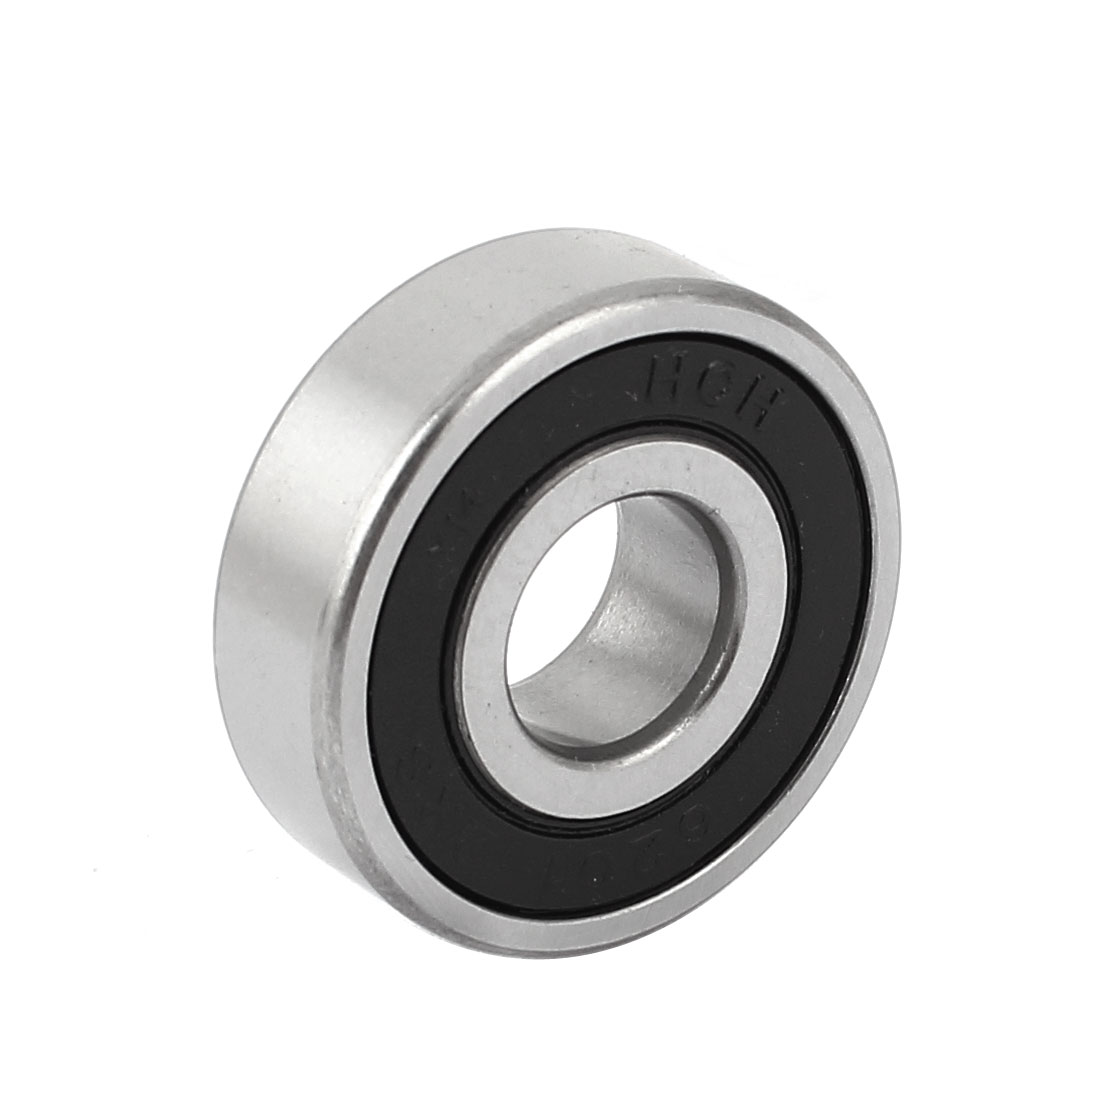 6201-2RS 12mm Inner Dia 32mm OD Shielded Ball Bearing for Electric Motor